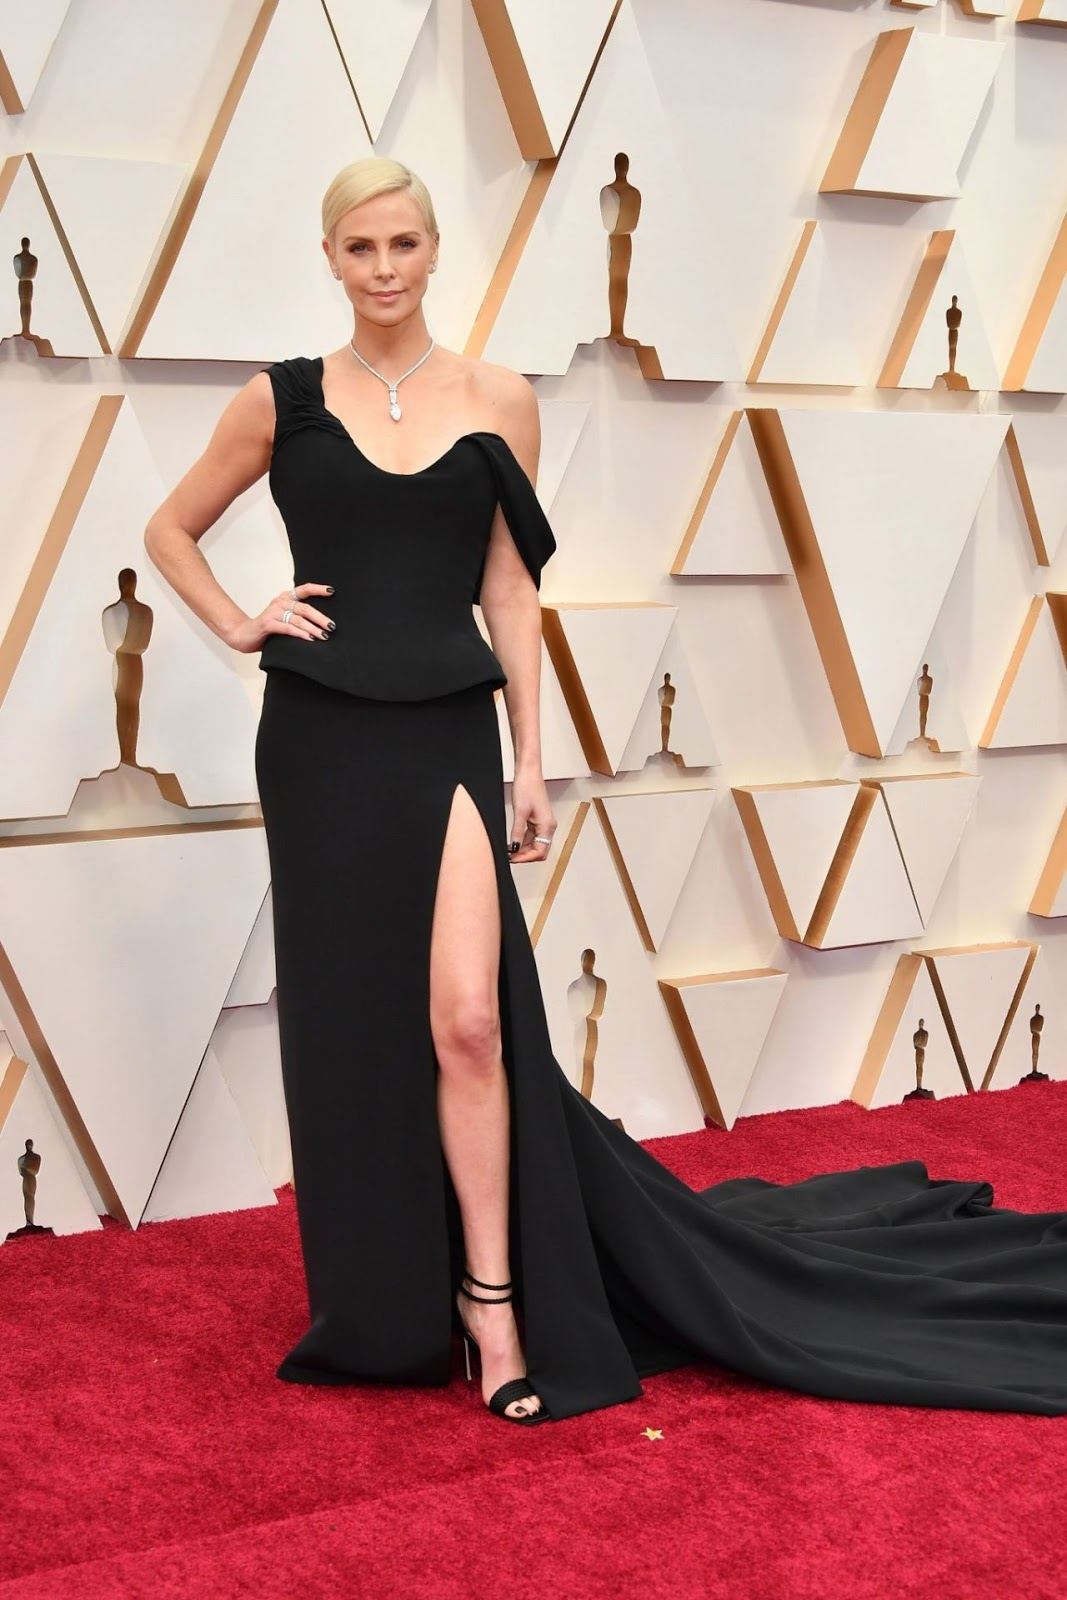 Charlize Theron channels Old Hollywood glam in a black Dior couture gown at the Academy Awards